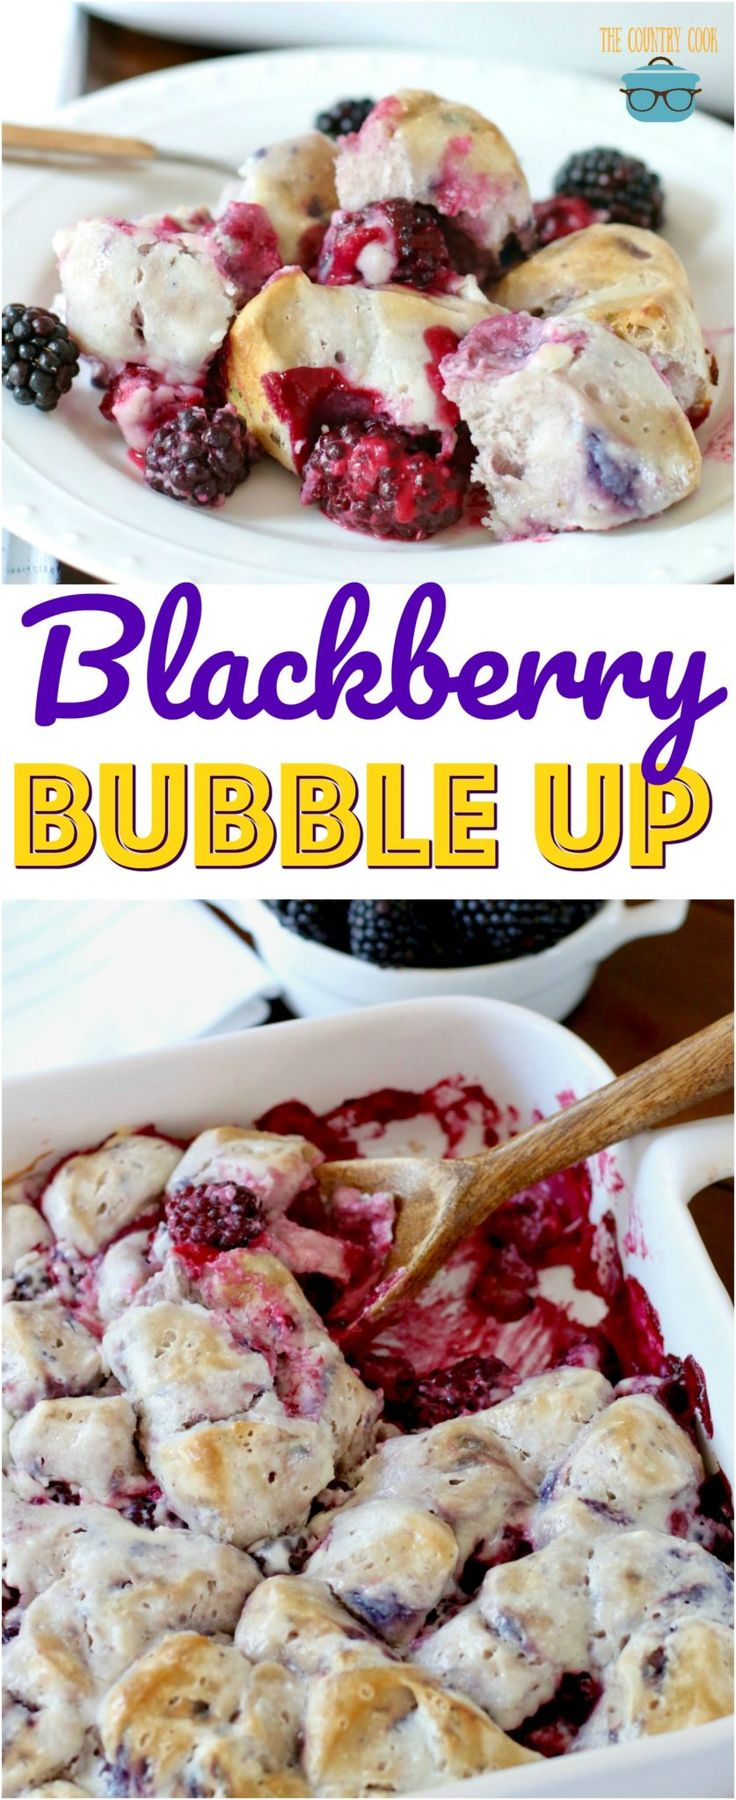 This Blackberry Bubble Up is a dessert made with refrigerated blueberry biscuits, fresh blackberries (or blueberries) cream cheese, powdered sugar all baked up in a casserole dish. #desserts #blackberries #recipes #ideas #biscuits #blueberries